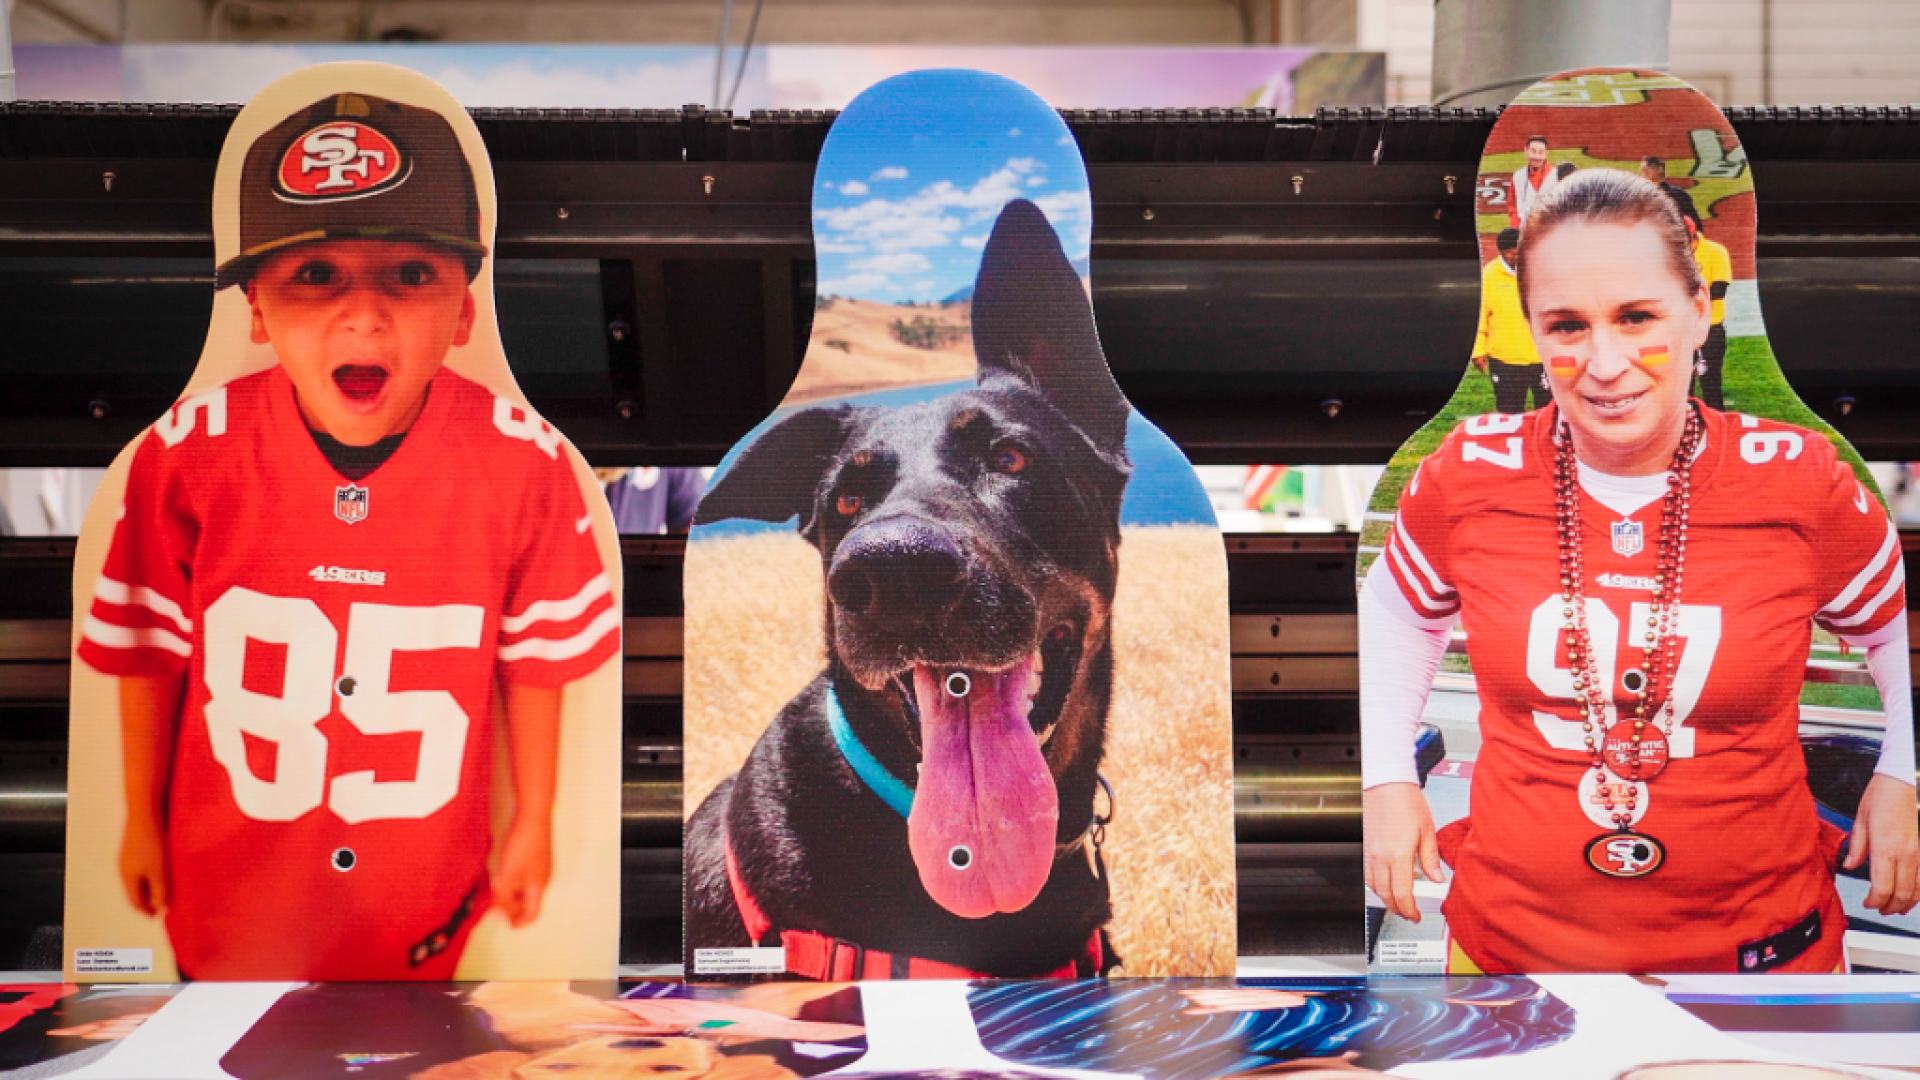 three head-and-shoulders cut-out photos: two of people in 49ers jerseys, and one of a black dog with its tongue out.